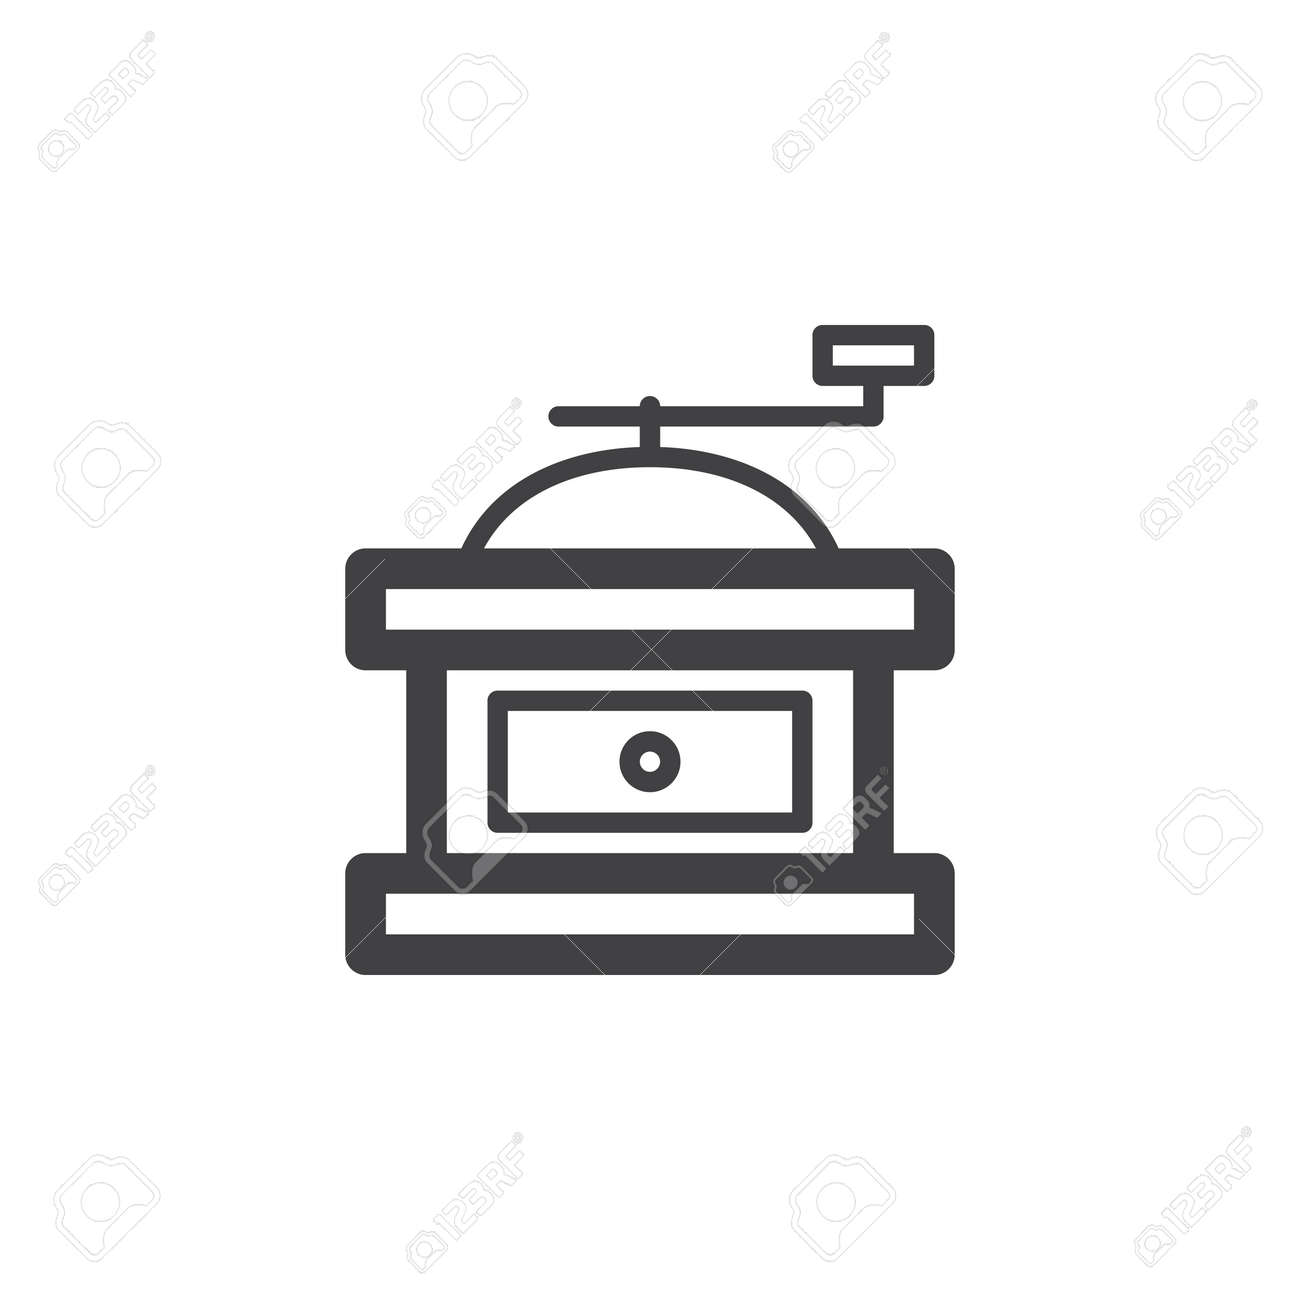 Manual transport of fragile materials. Vector icon. Stock vector.